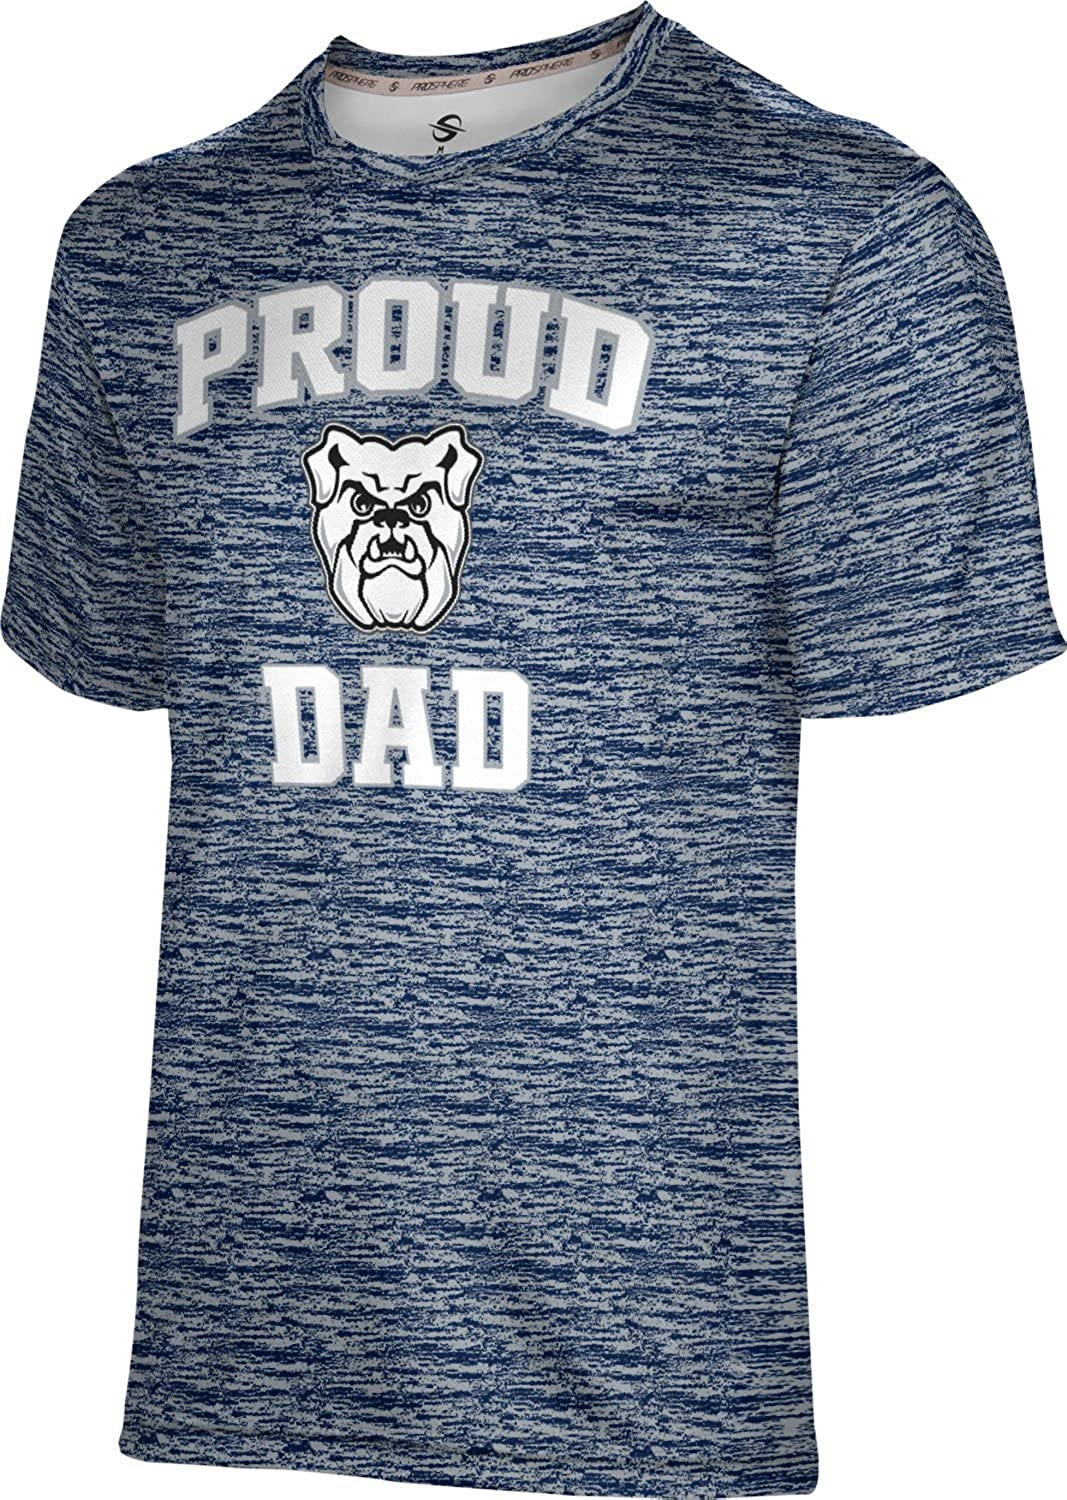 ProSphere Butler University Father's Men's Max 66% OFF Max 63% OFF T-Shi Performance Day